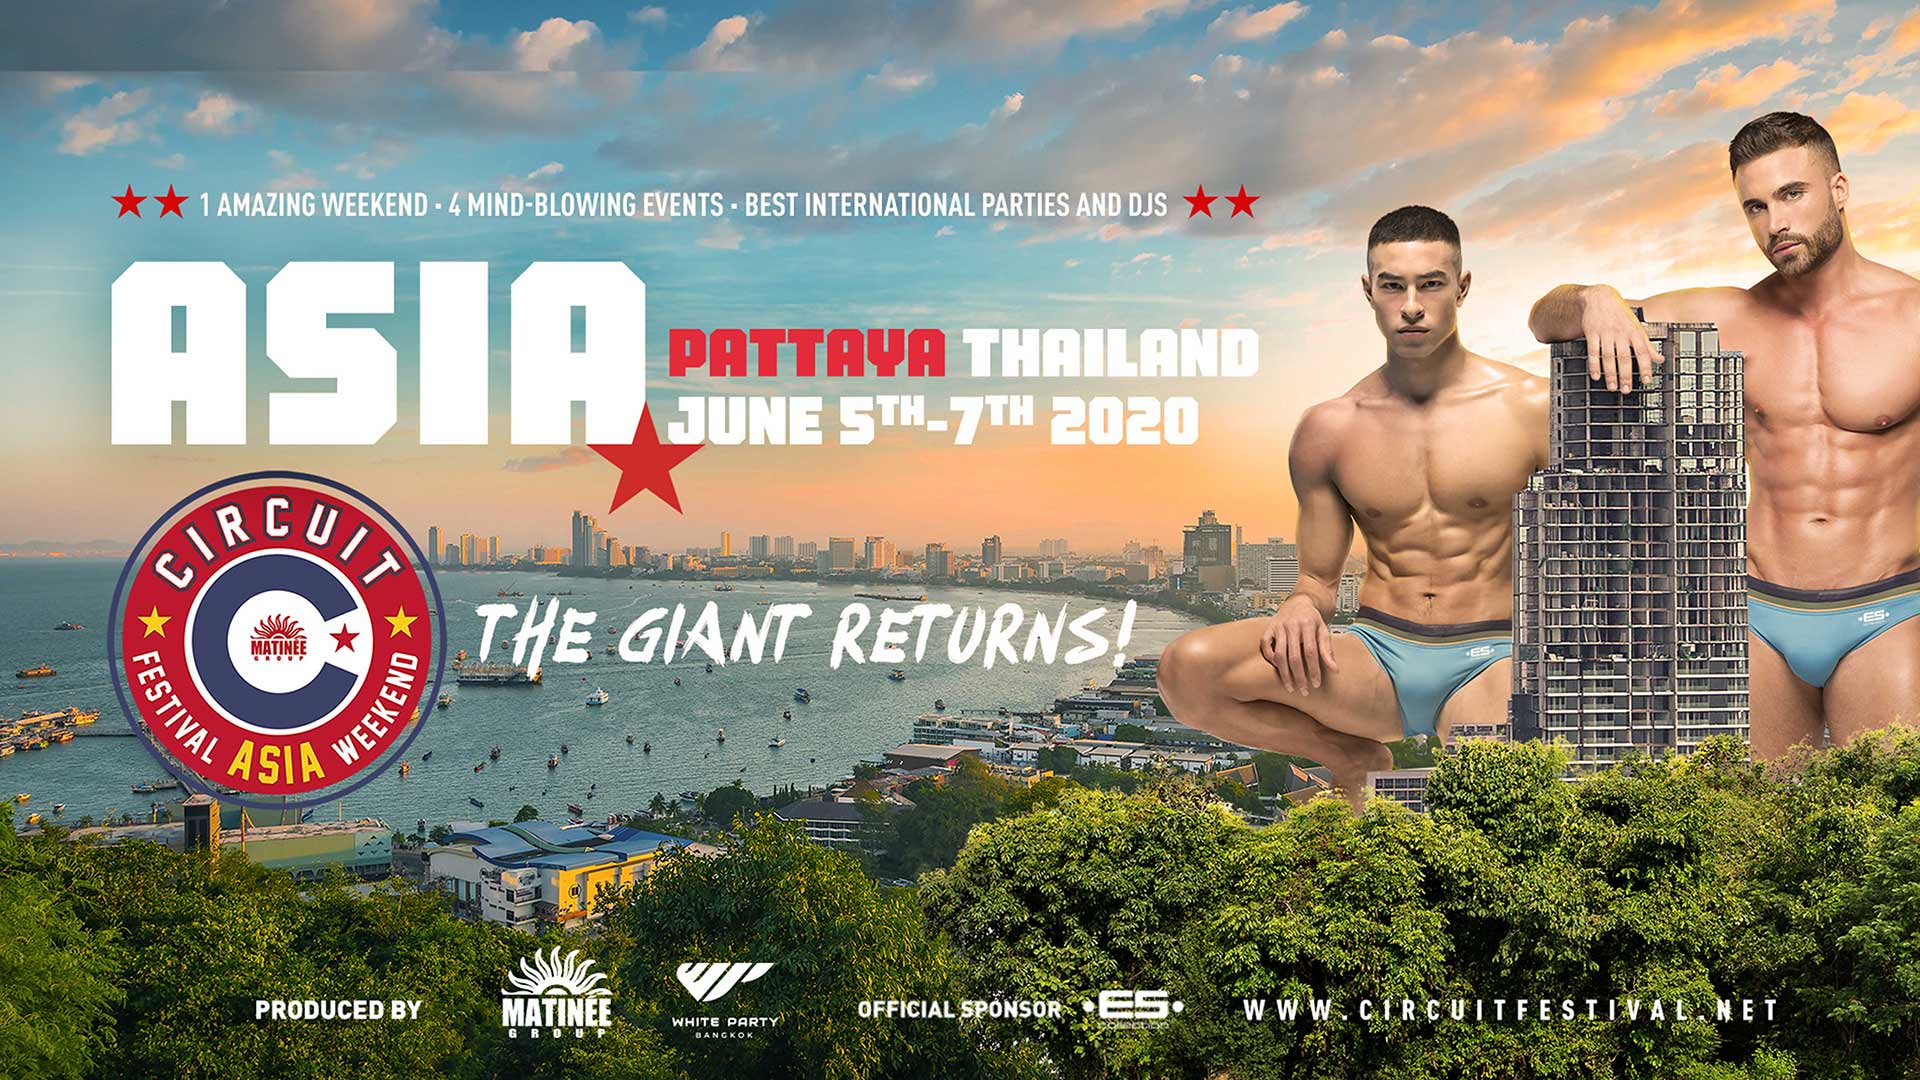 asia-circuit-festival-gay-party-parties-events-thailandia